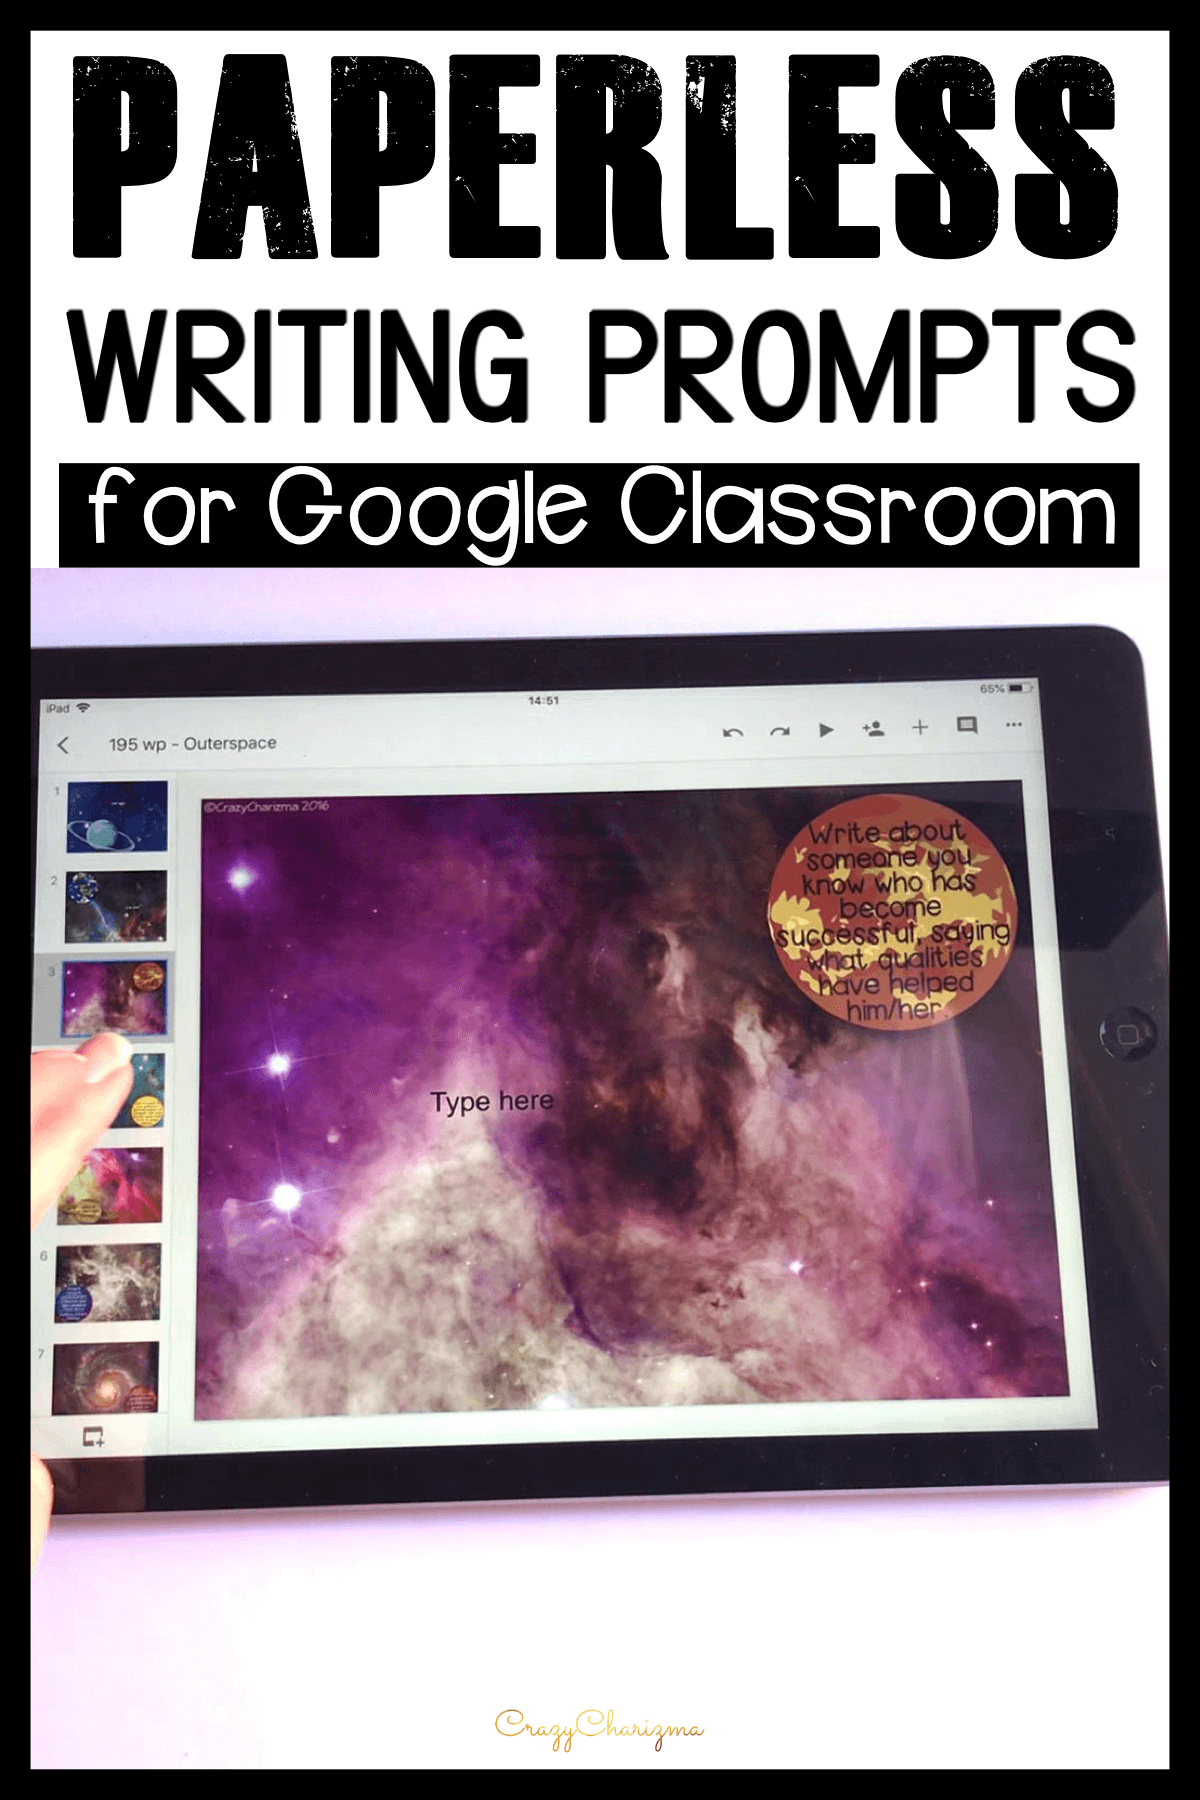 Engage students with writing starting today! Use technology (iPads, Chromebooks, laptops) for quick student writing practice! Working in Google Classroom and Google SLides, let the students start writing right away! Monitor their progress, answer questions and offer feedback as they write.